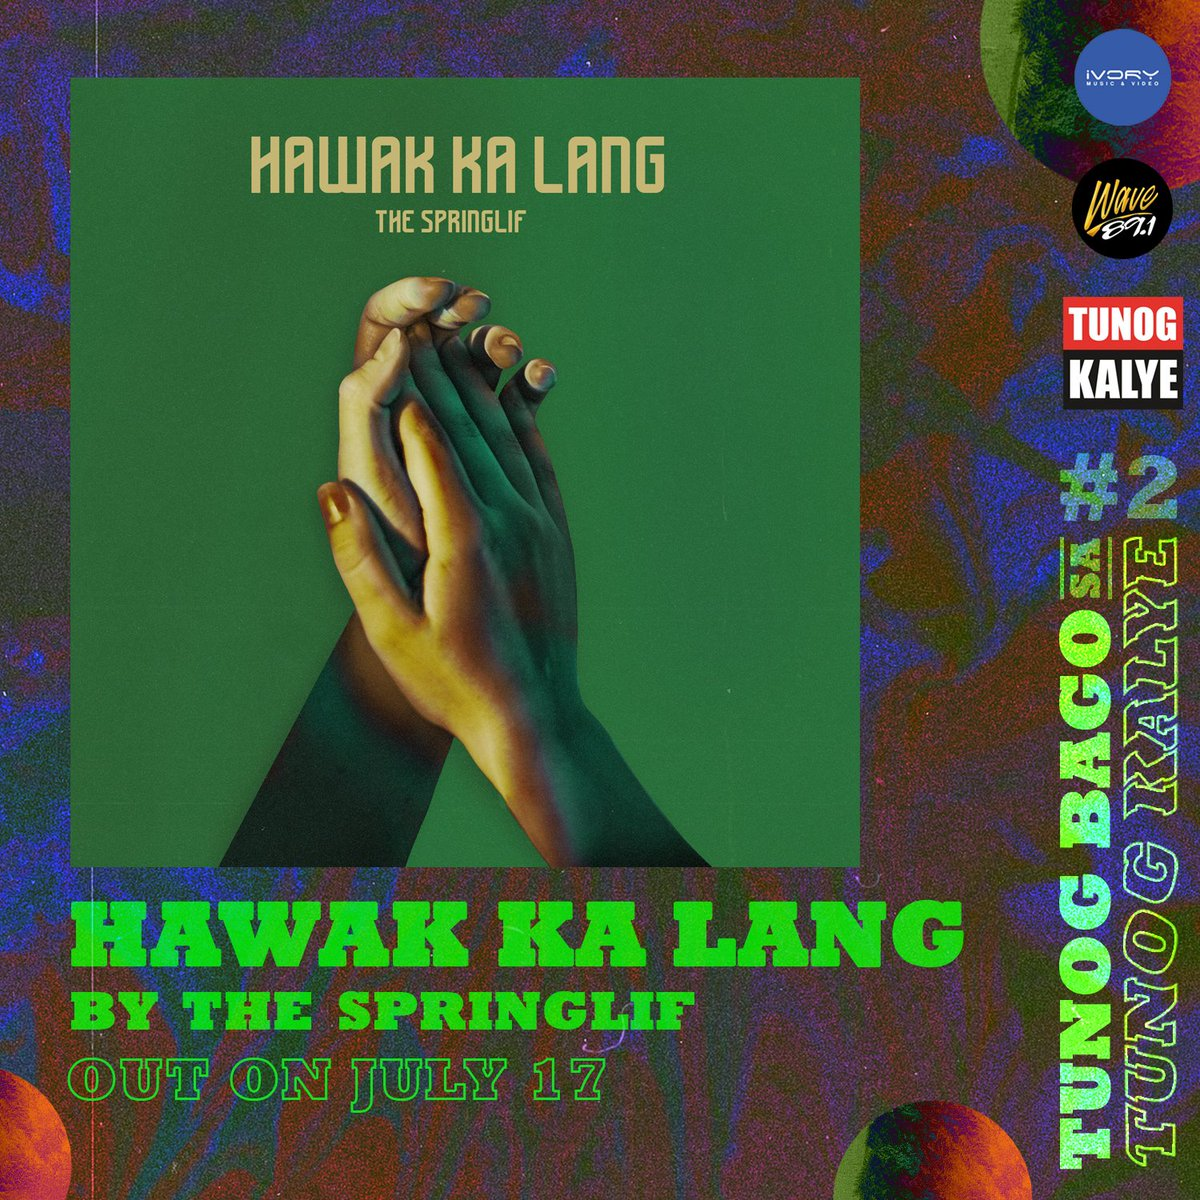 """Stuck at home? We got you because music can never be quarantined!  Next from our collab with @Wave891FM for """"Tunog Bago sa Tunog Kalye"""" is The SpringLif's """"Hawak Ka Lang"""", which will be out on July 17, 2020.  Pre-save and pre-add """"Hawak Ka Lang"""" now! http://bit.ly/HawakKaLangTheSpringlif…pic.twitter.com/oZdV1hFA0t"""